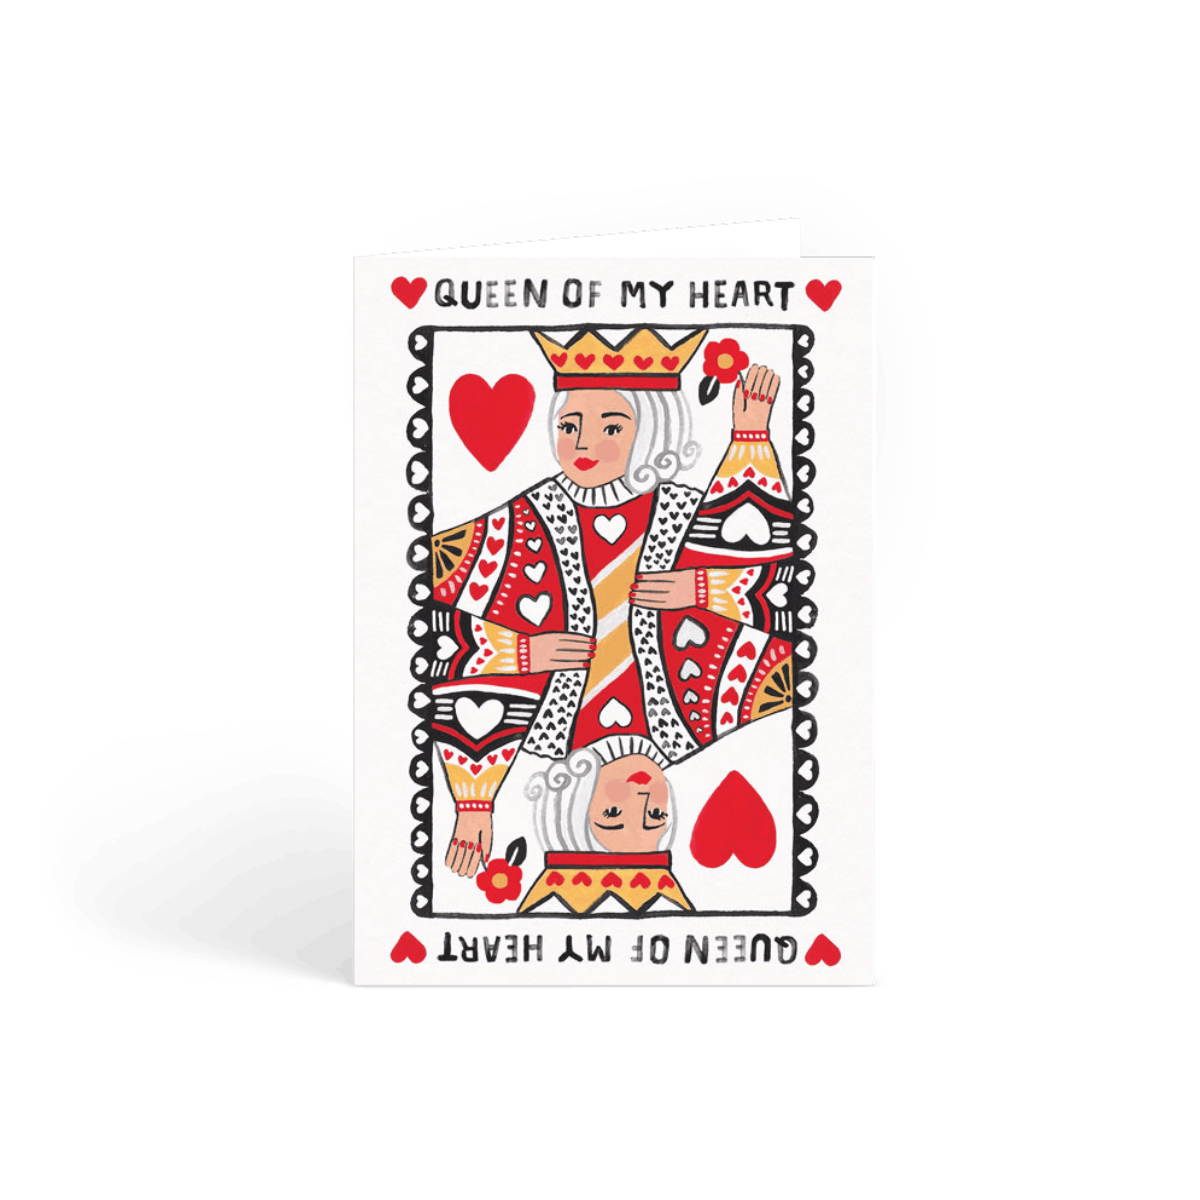 Https%3a%2f%2fwww.papier.com%2fproduct image%2f31989%2f2%2fqueen of hearts 8031 front 1512557216.png?ixlib=rb 1.1